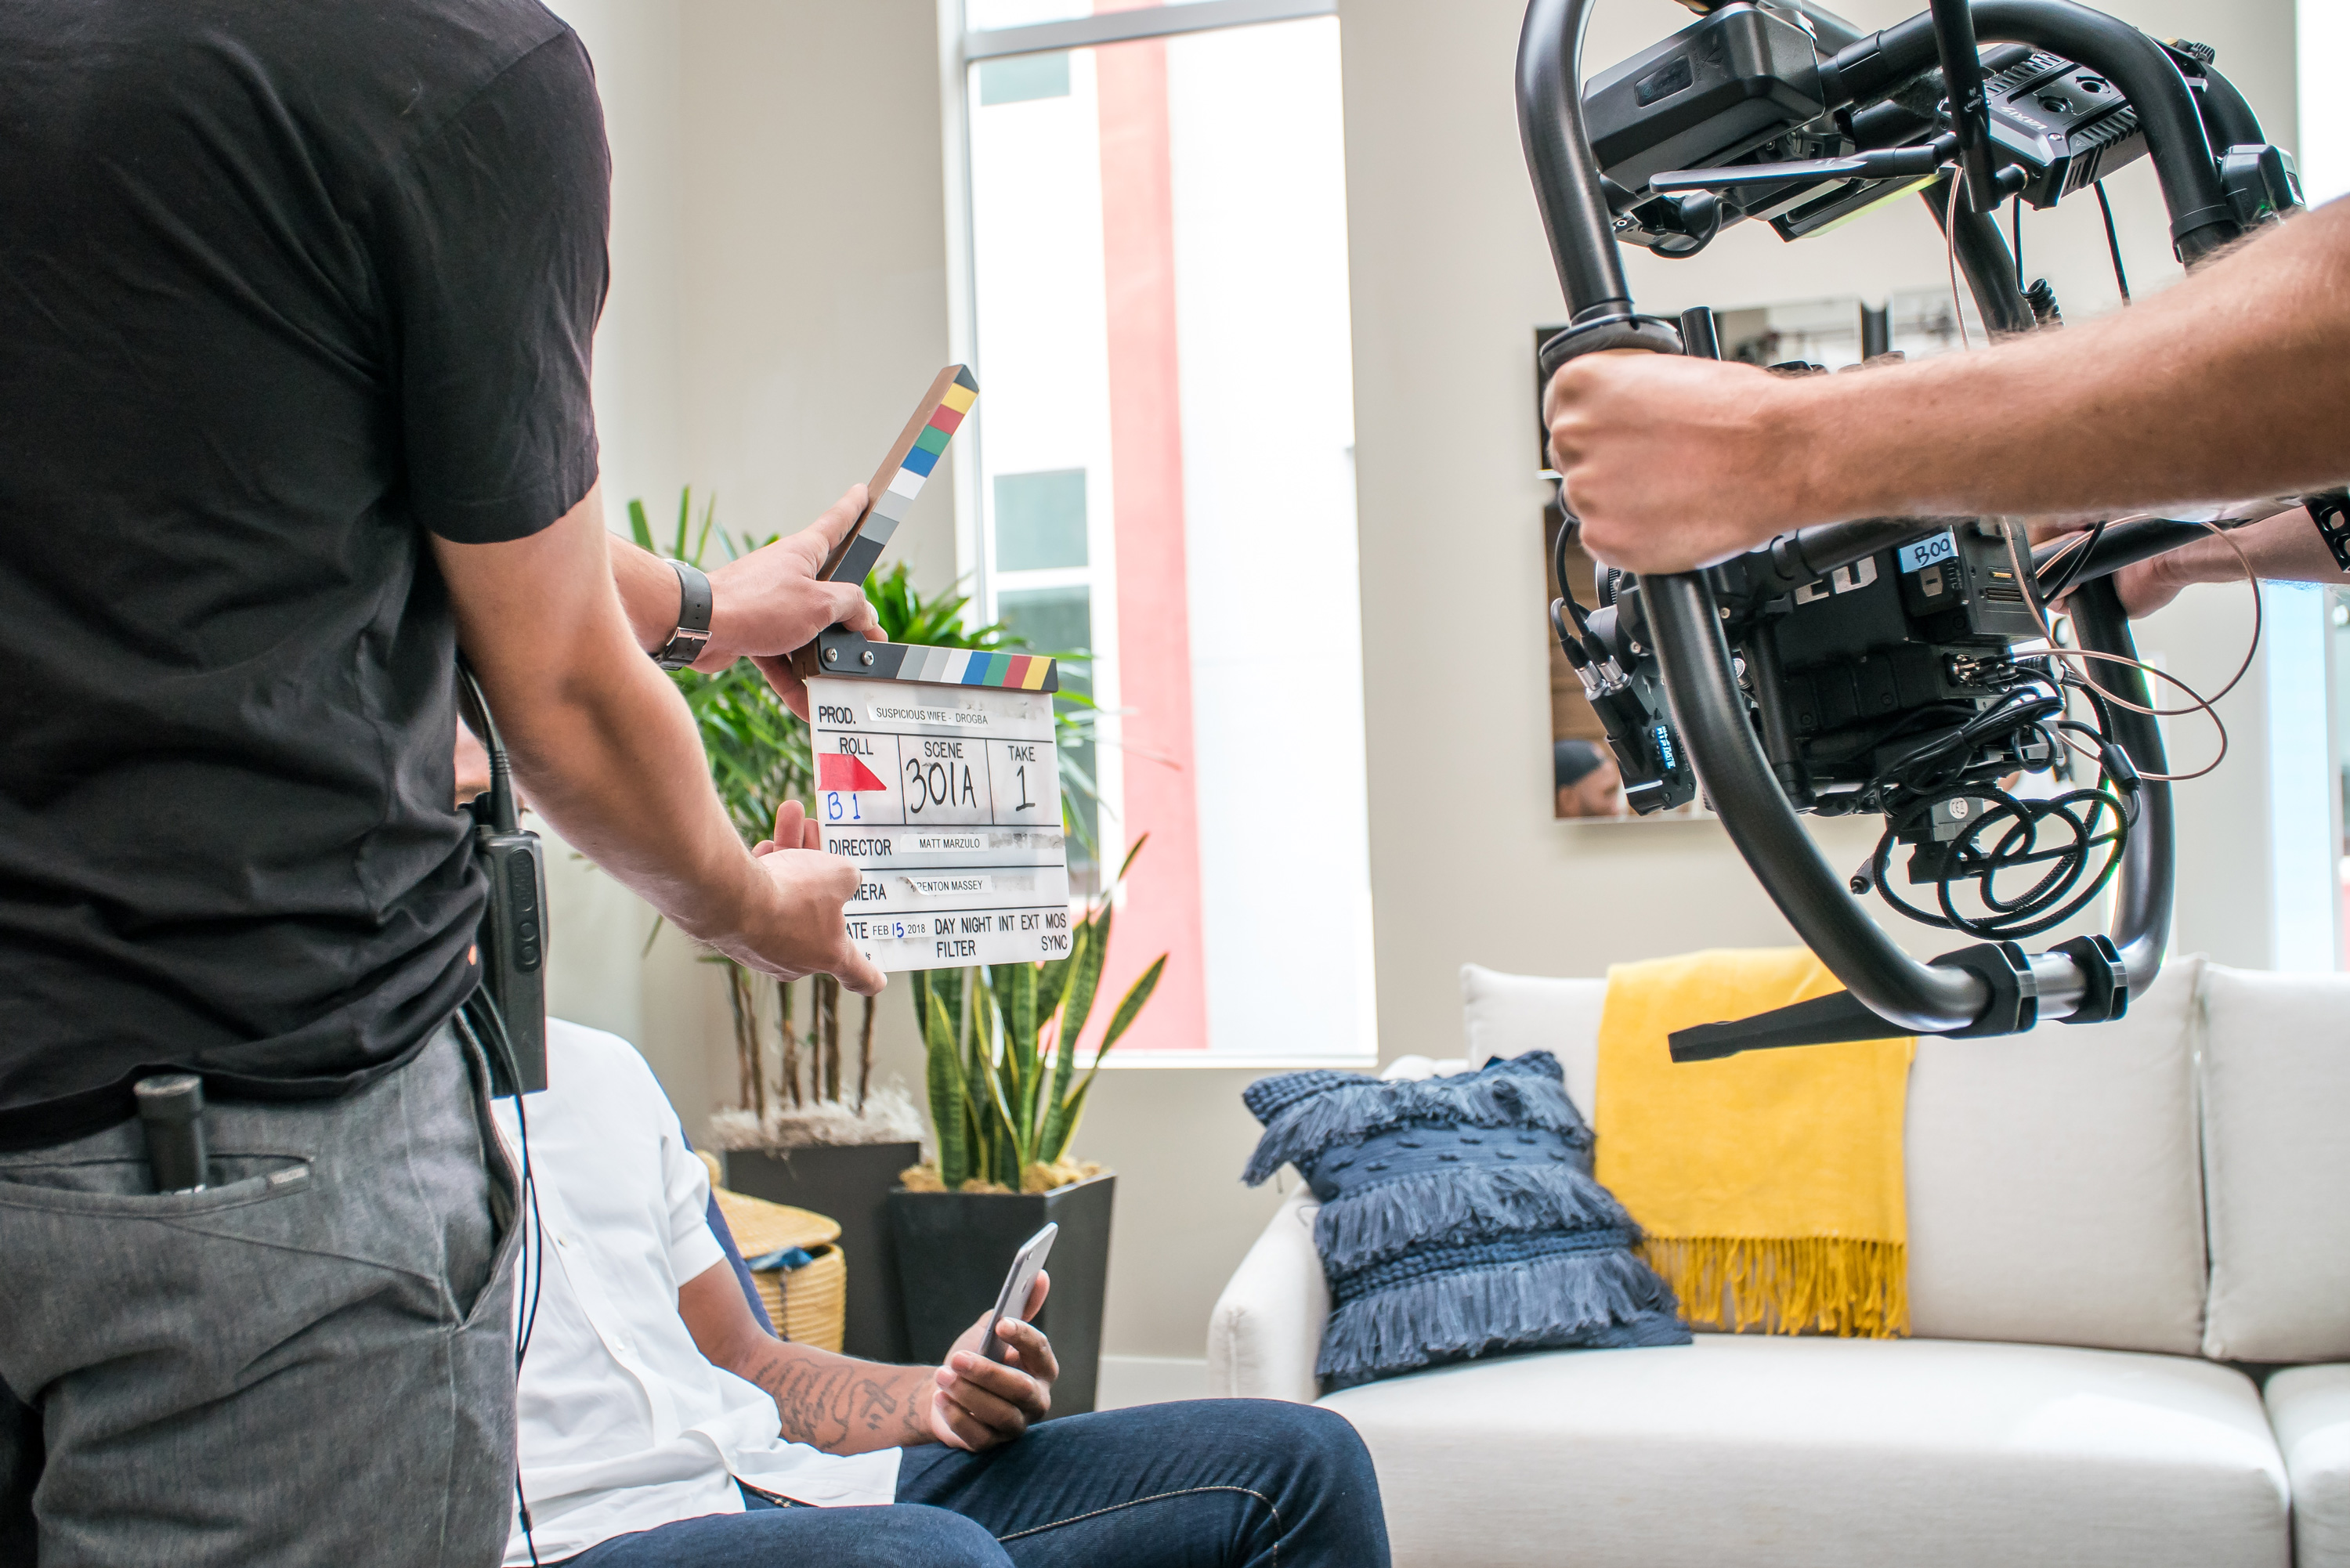 How to make the most of your video production budget